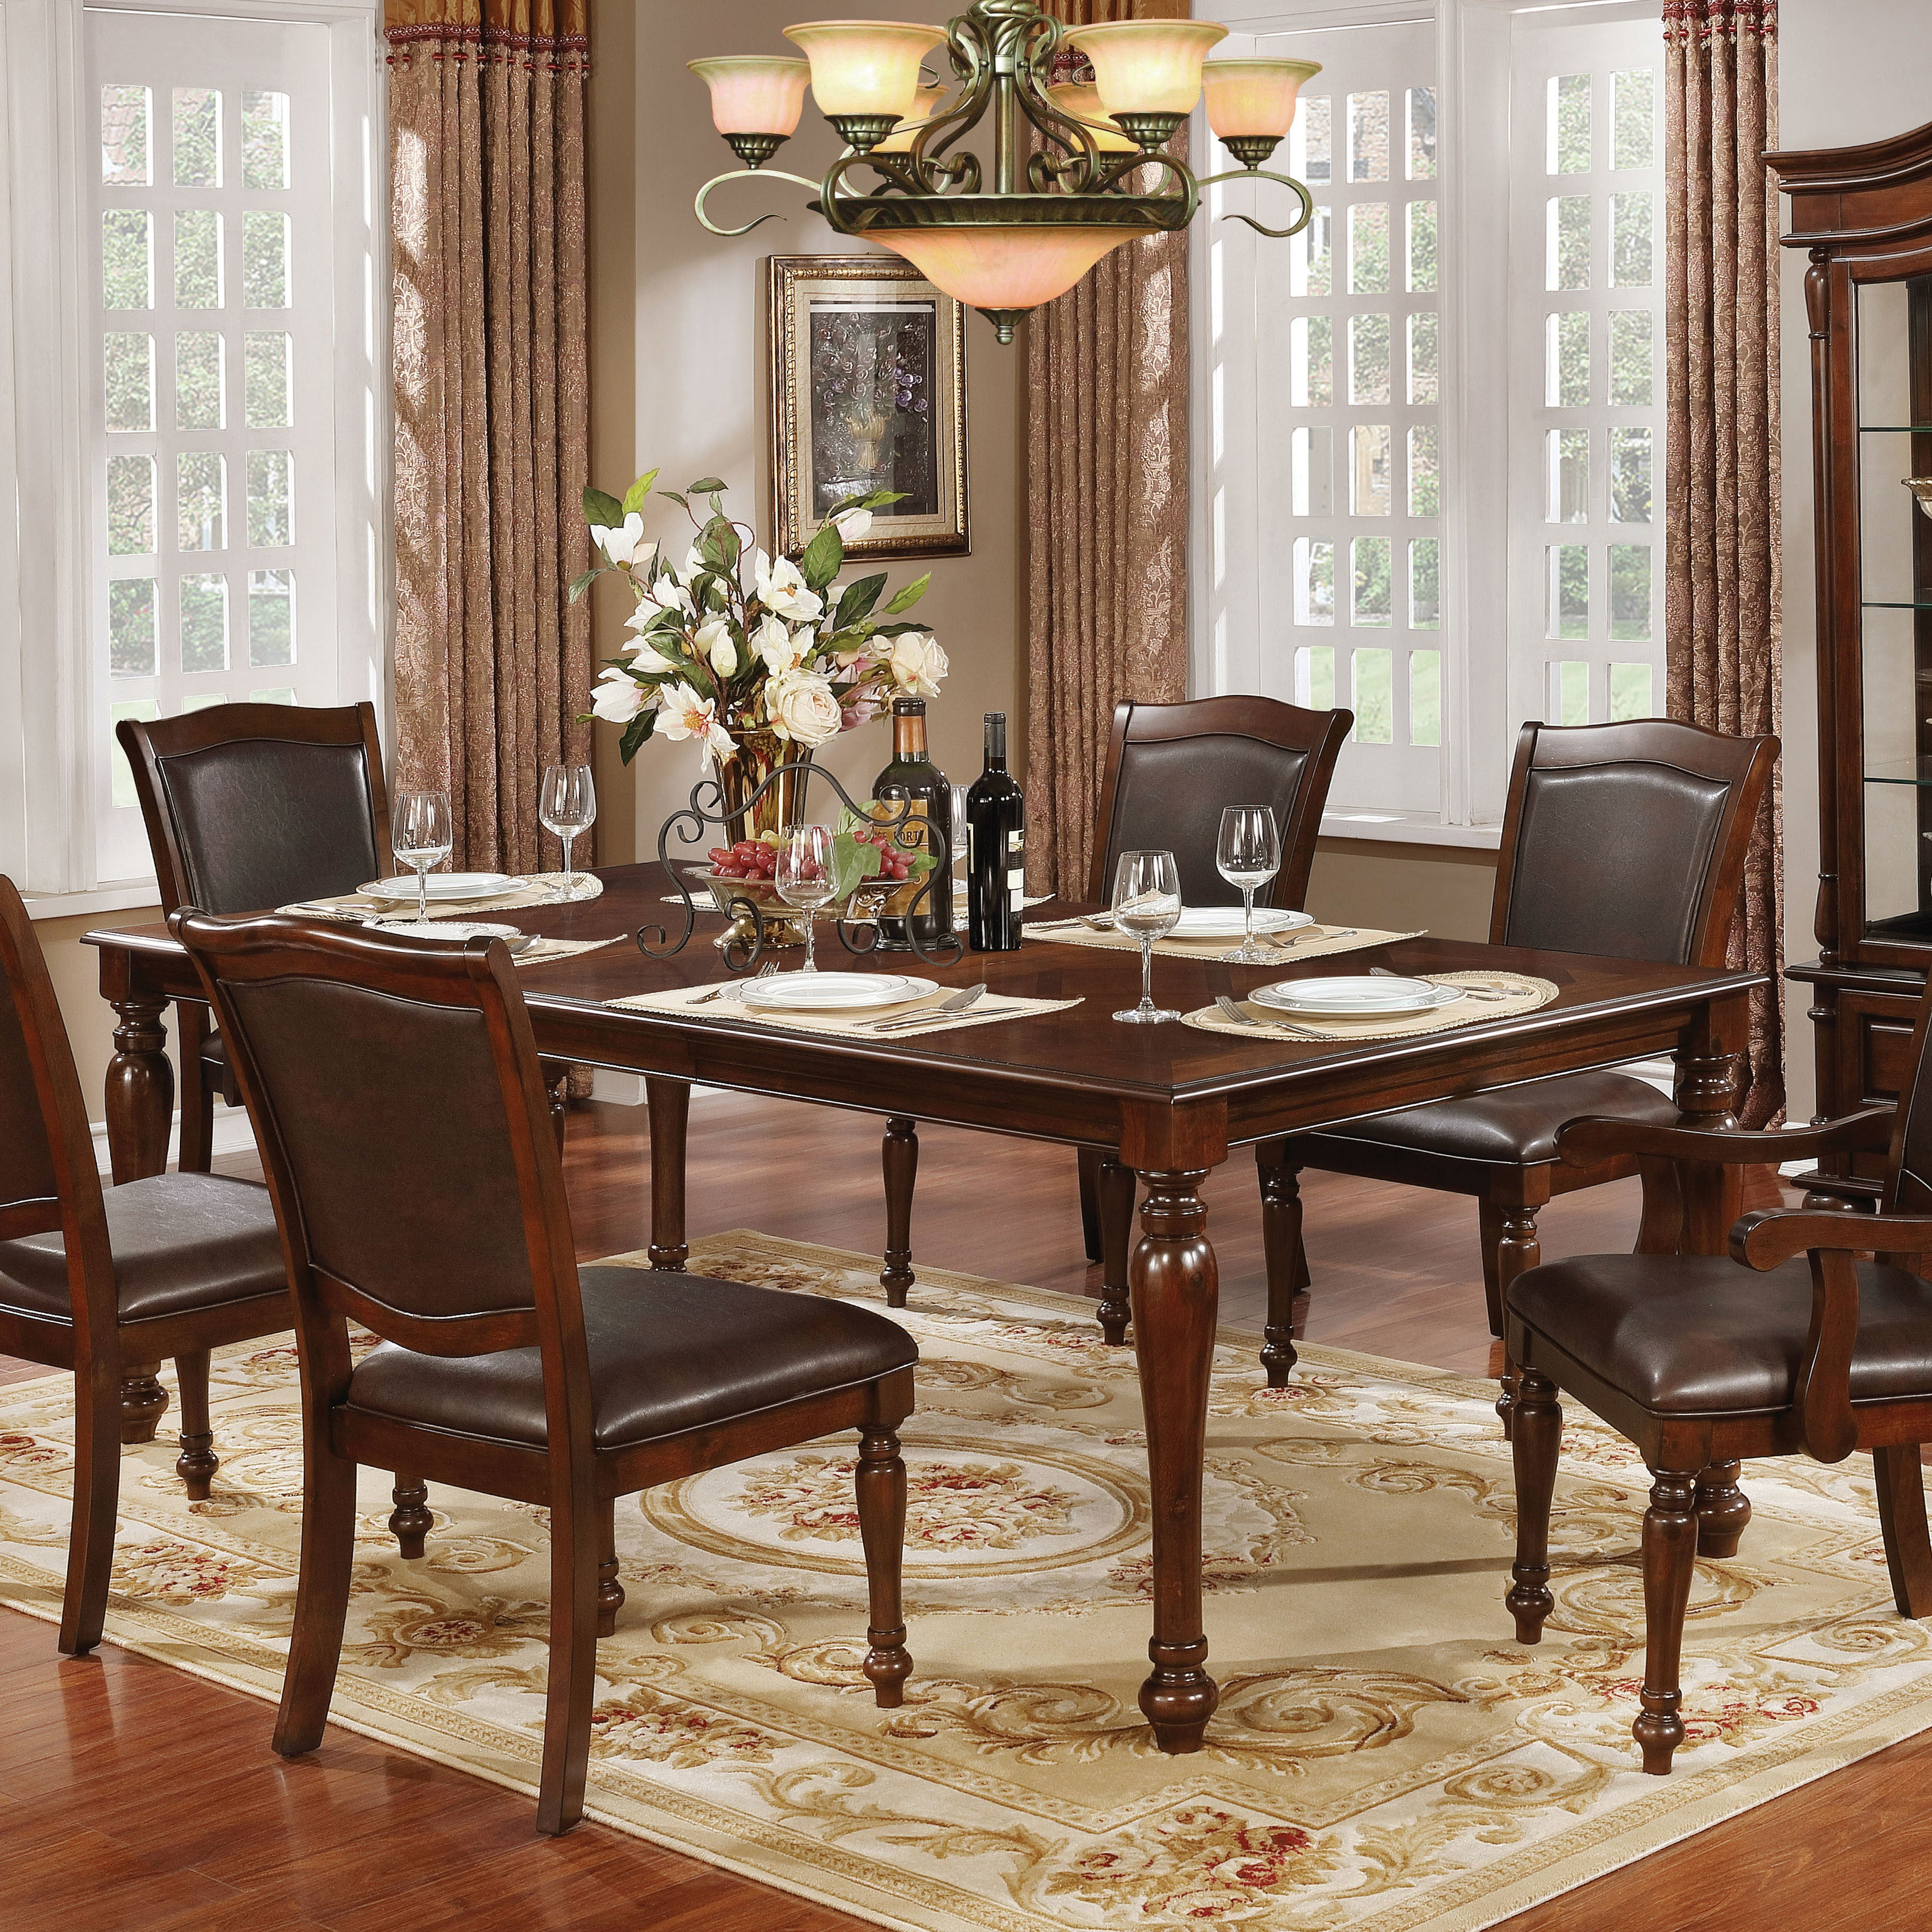 Furniture Of America Renoir Traditional Brown Cherry Wood Inch - 84 inch dining room table